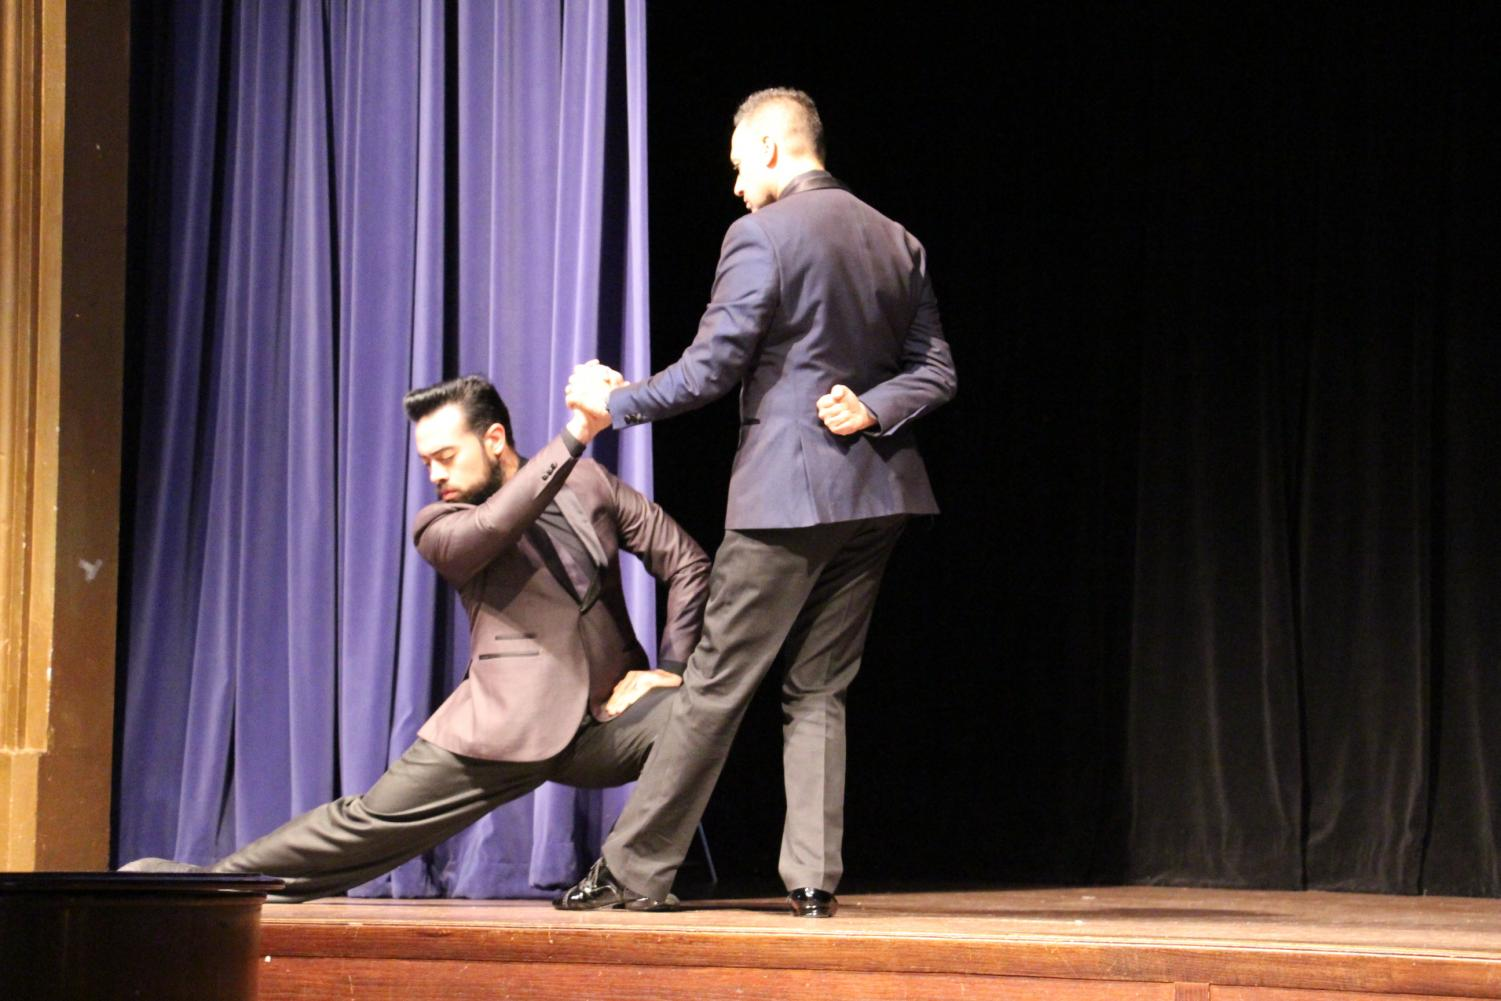 Tango dancers Walter Perez and Leonardo Sardella perform at Upper School Chapel on October 5th, 2018.